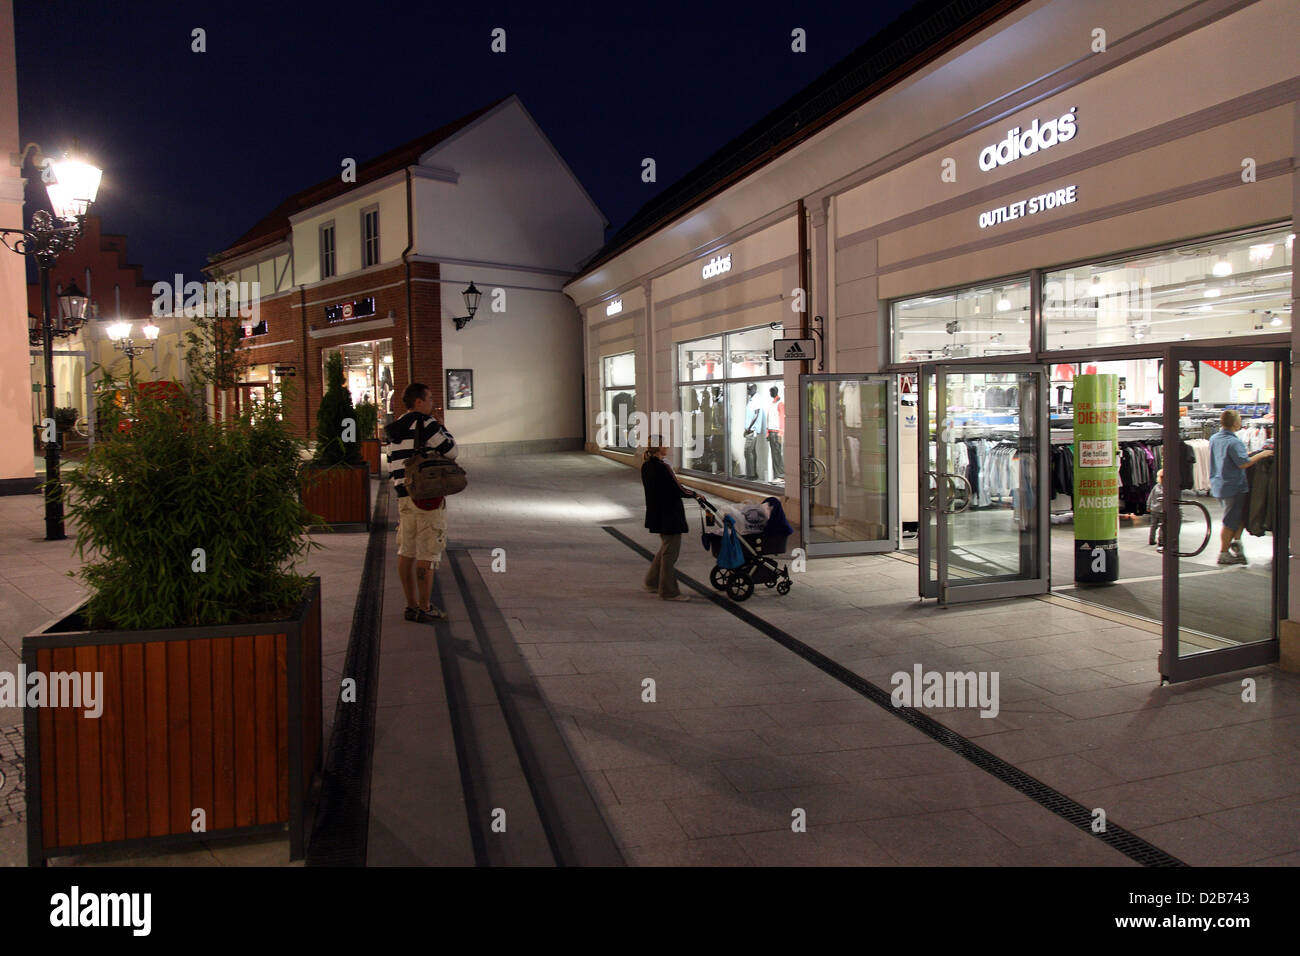 wustermark germany adidas outlet store in b5 designer outlet center stock photo royalty free. Black Bedroom Furniture Sets. Home Design Ideas